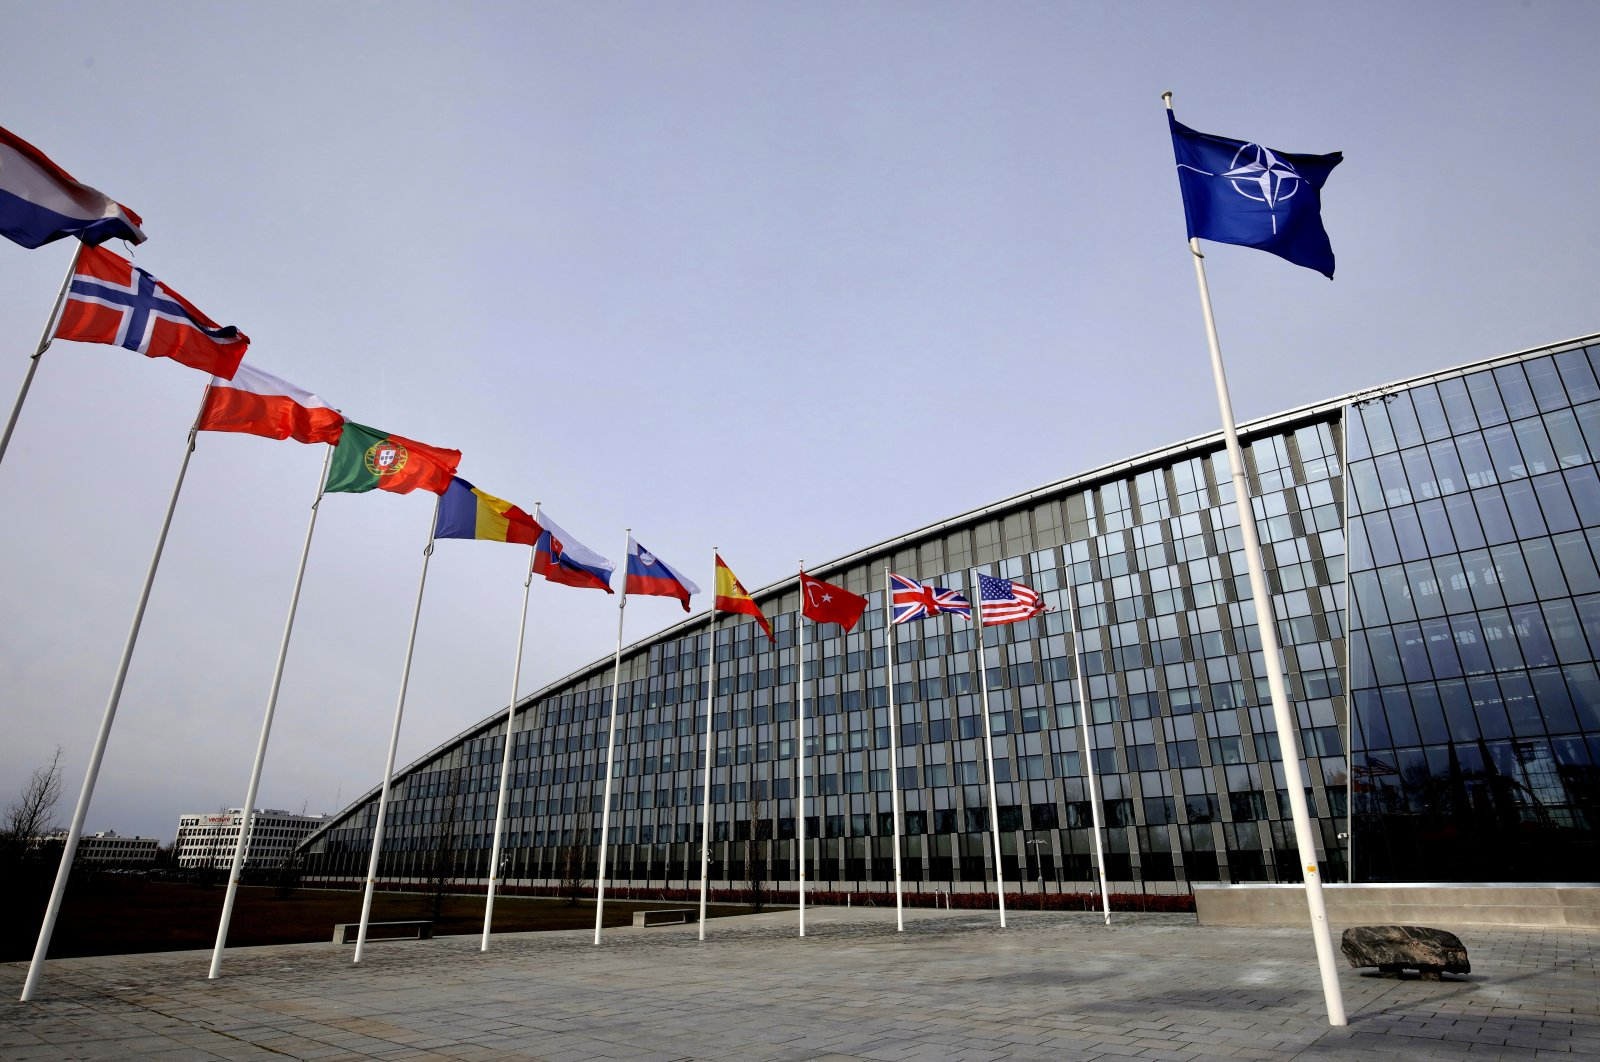 The flags of NATO members flap in the wind outside NATO headquarters in Brussels, Belgium, Feb. 28, 2020. (AP Photo)